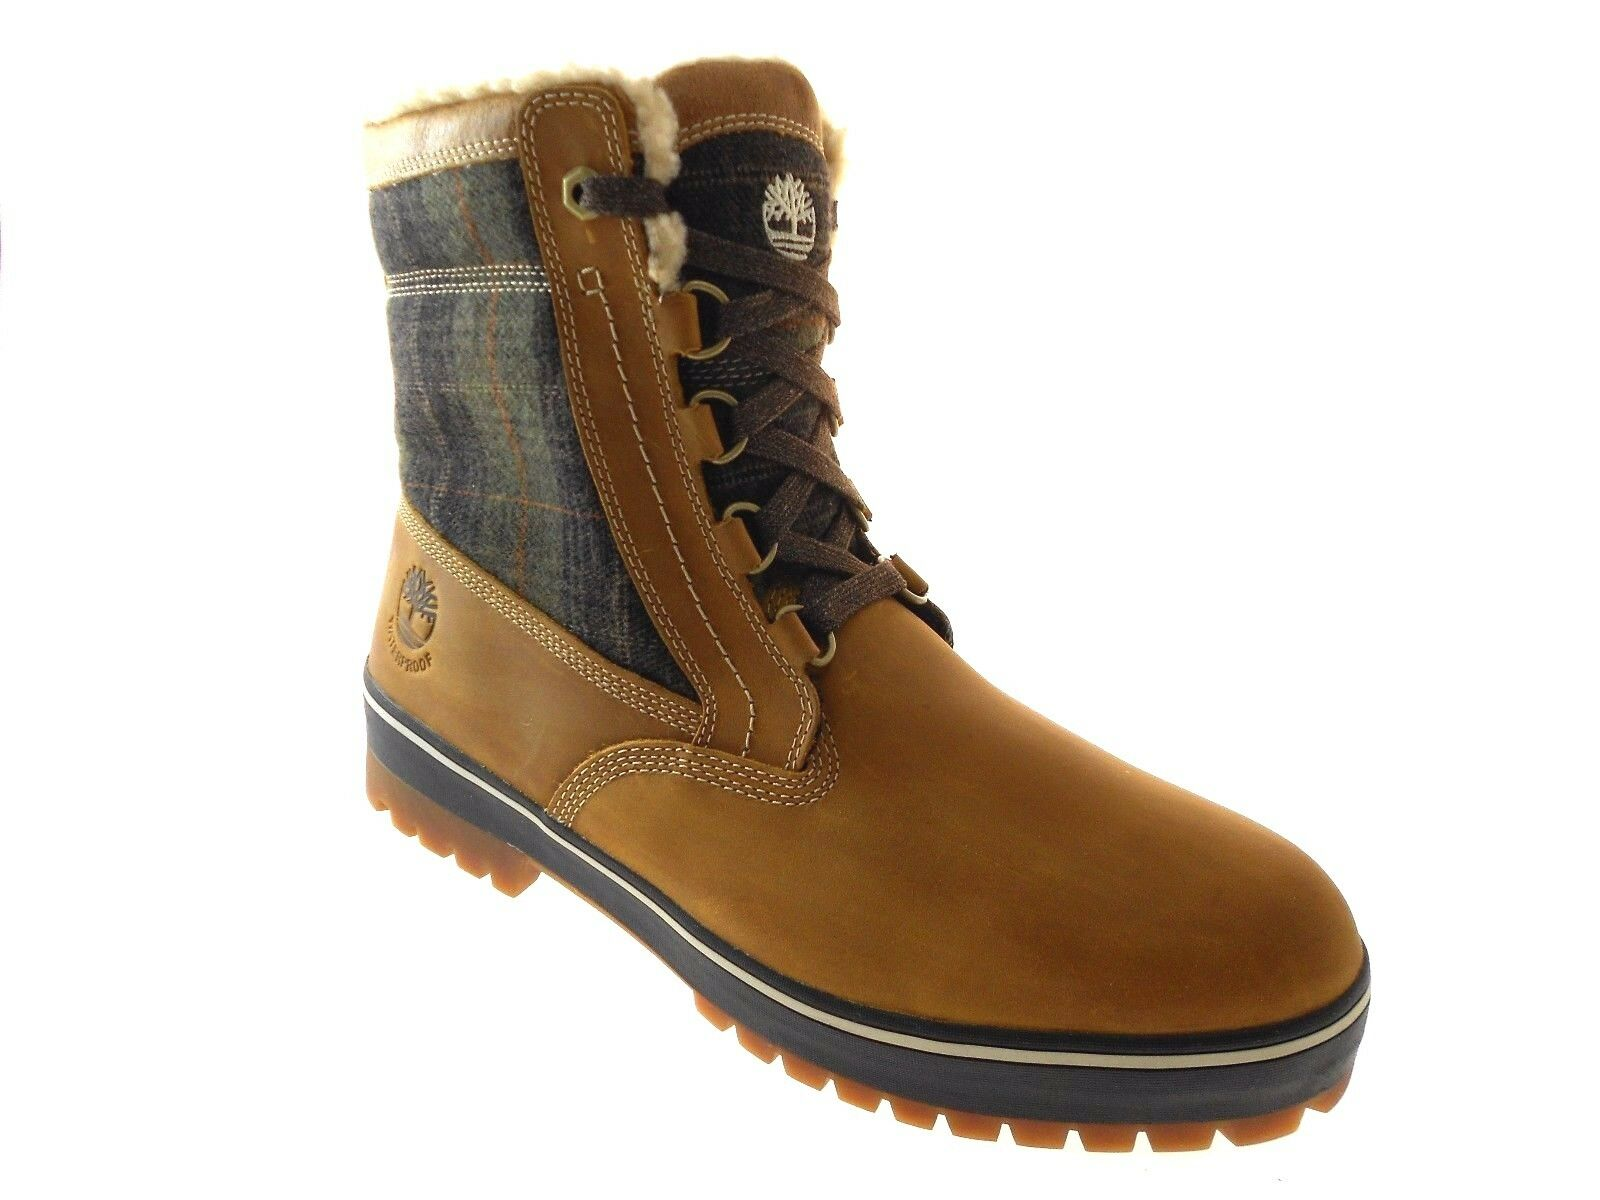 16f29102ad5 Details about TIMBERLAND MEN'S SPRUCE MOUNTAIN WHEAT PLAID WATERPROOF  INSULATED BOOTS 6900B